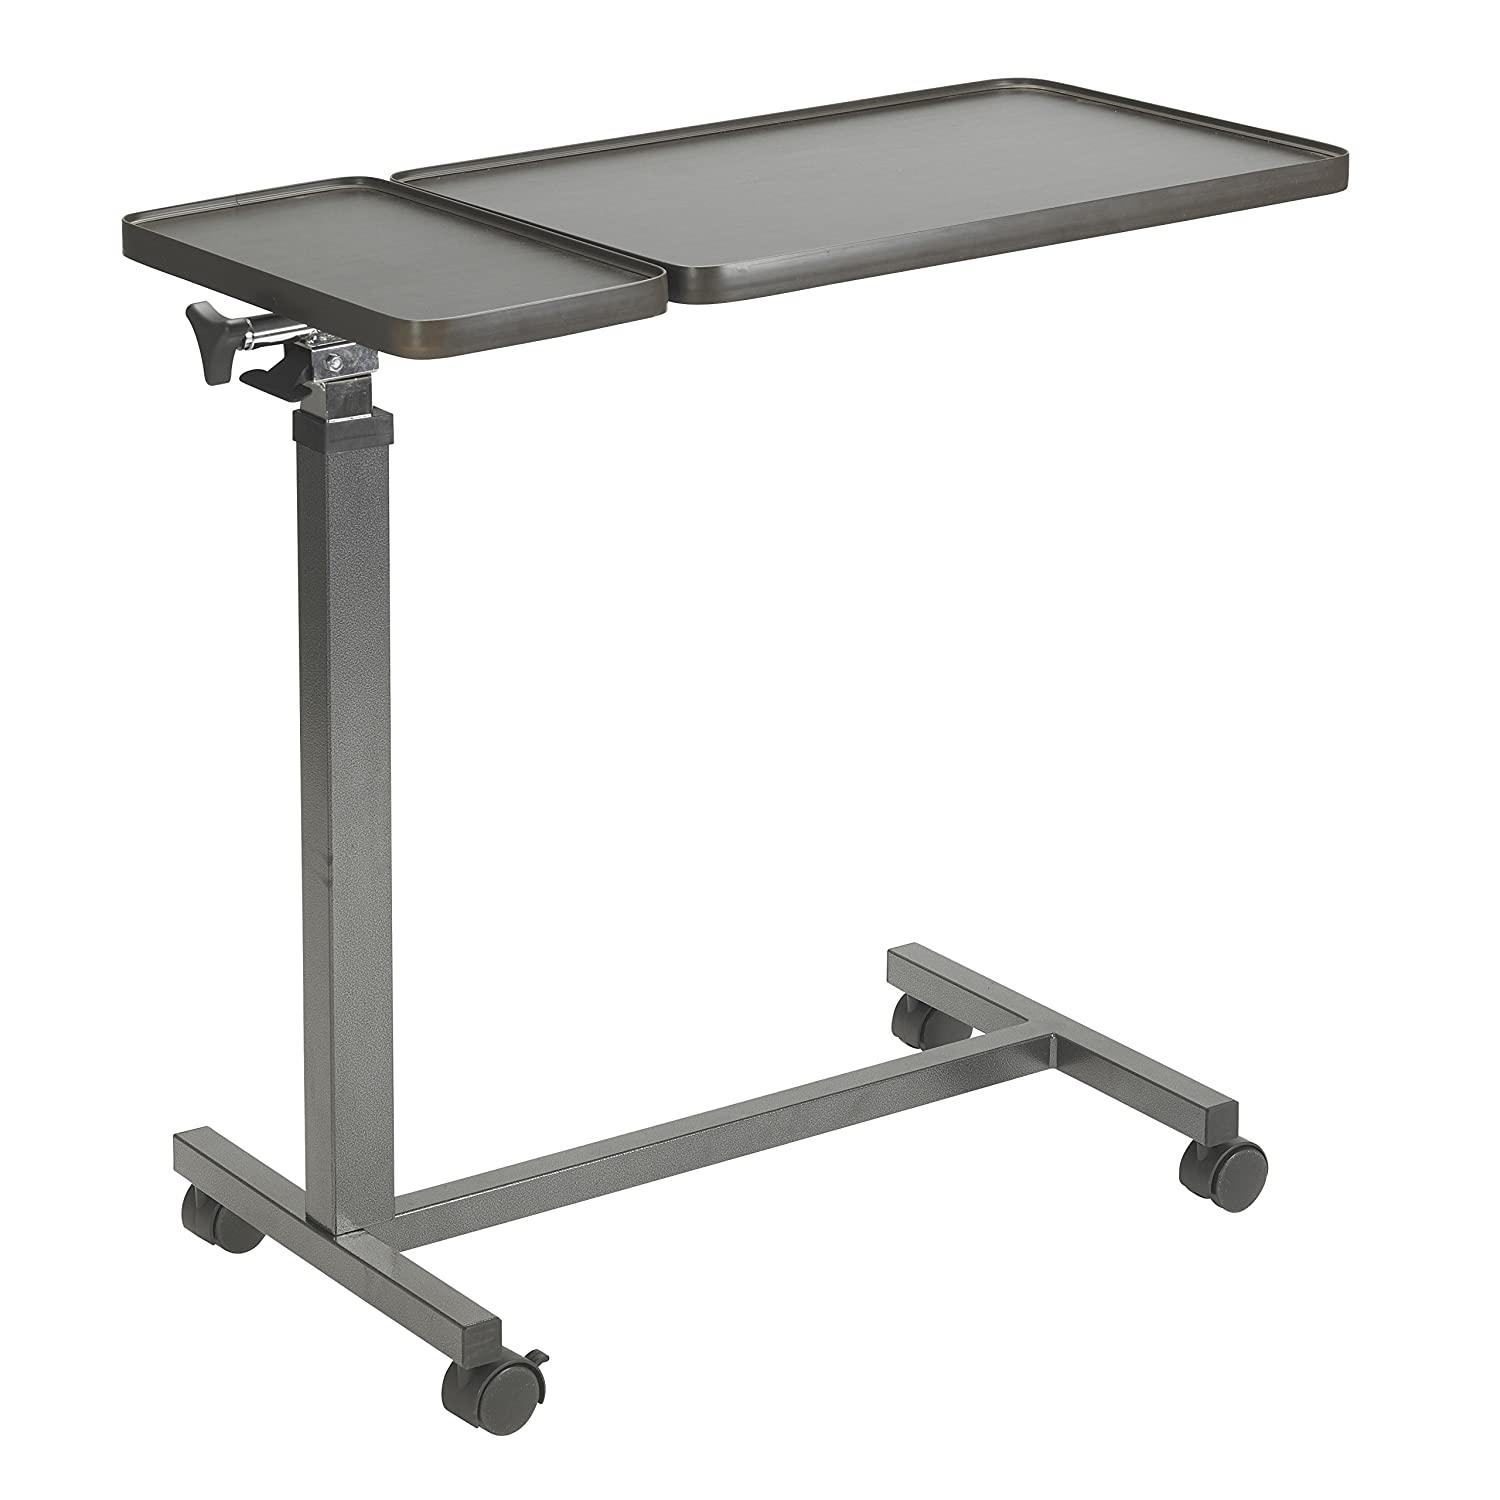 Diy overbed table - Drive Medical Multi Purpose Tilt Top Split Overbed Table